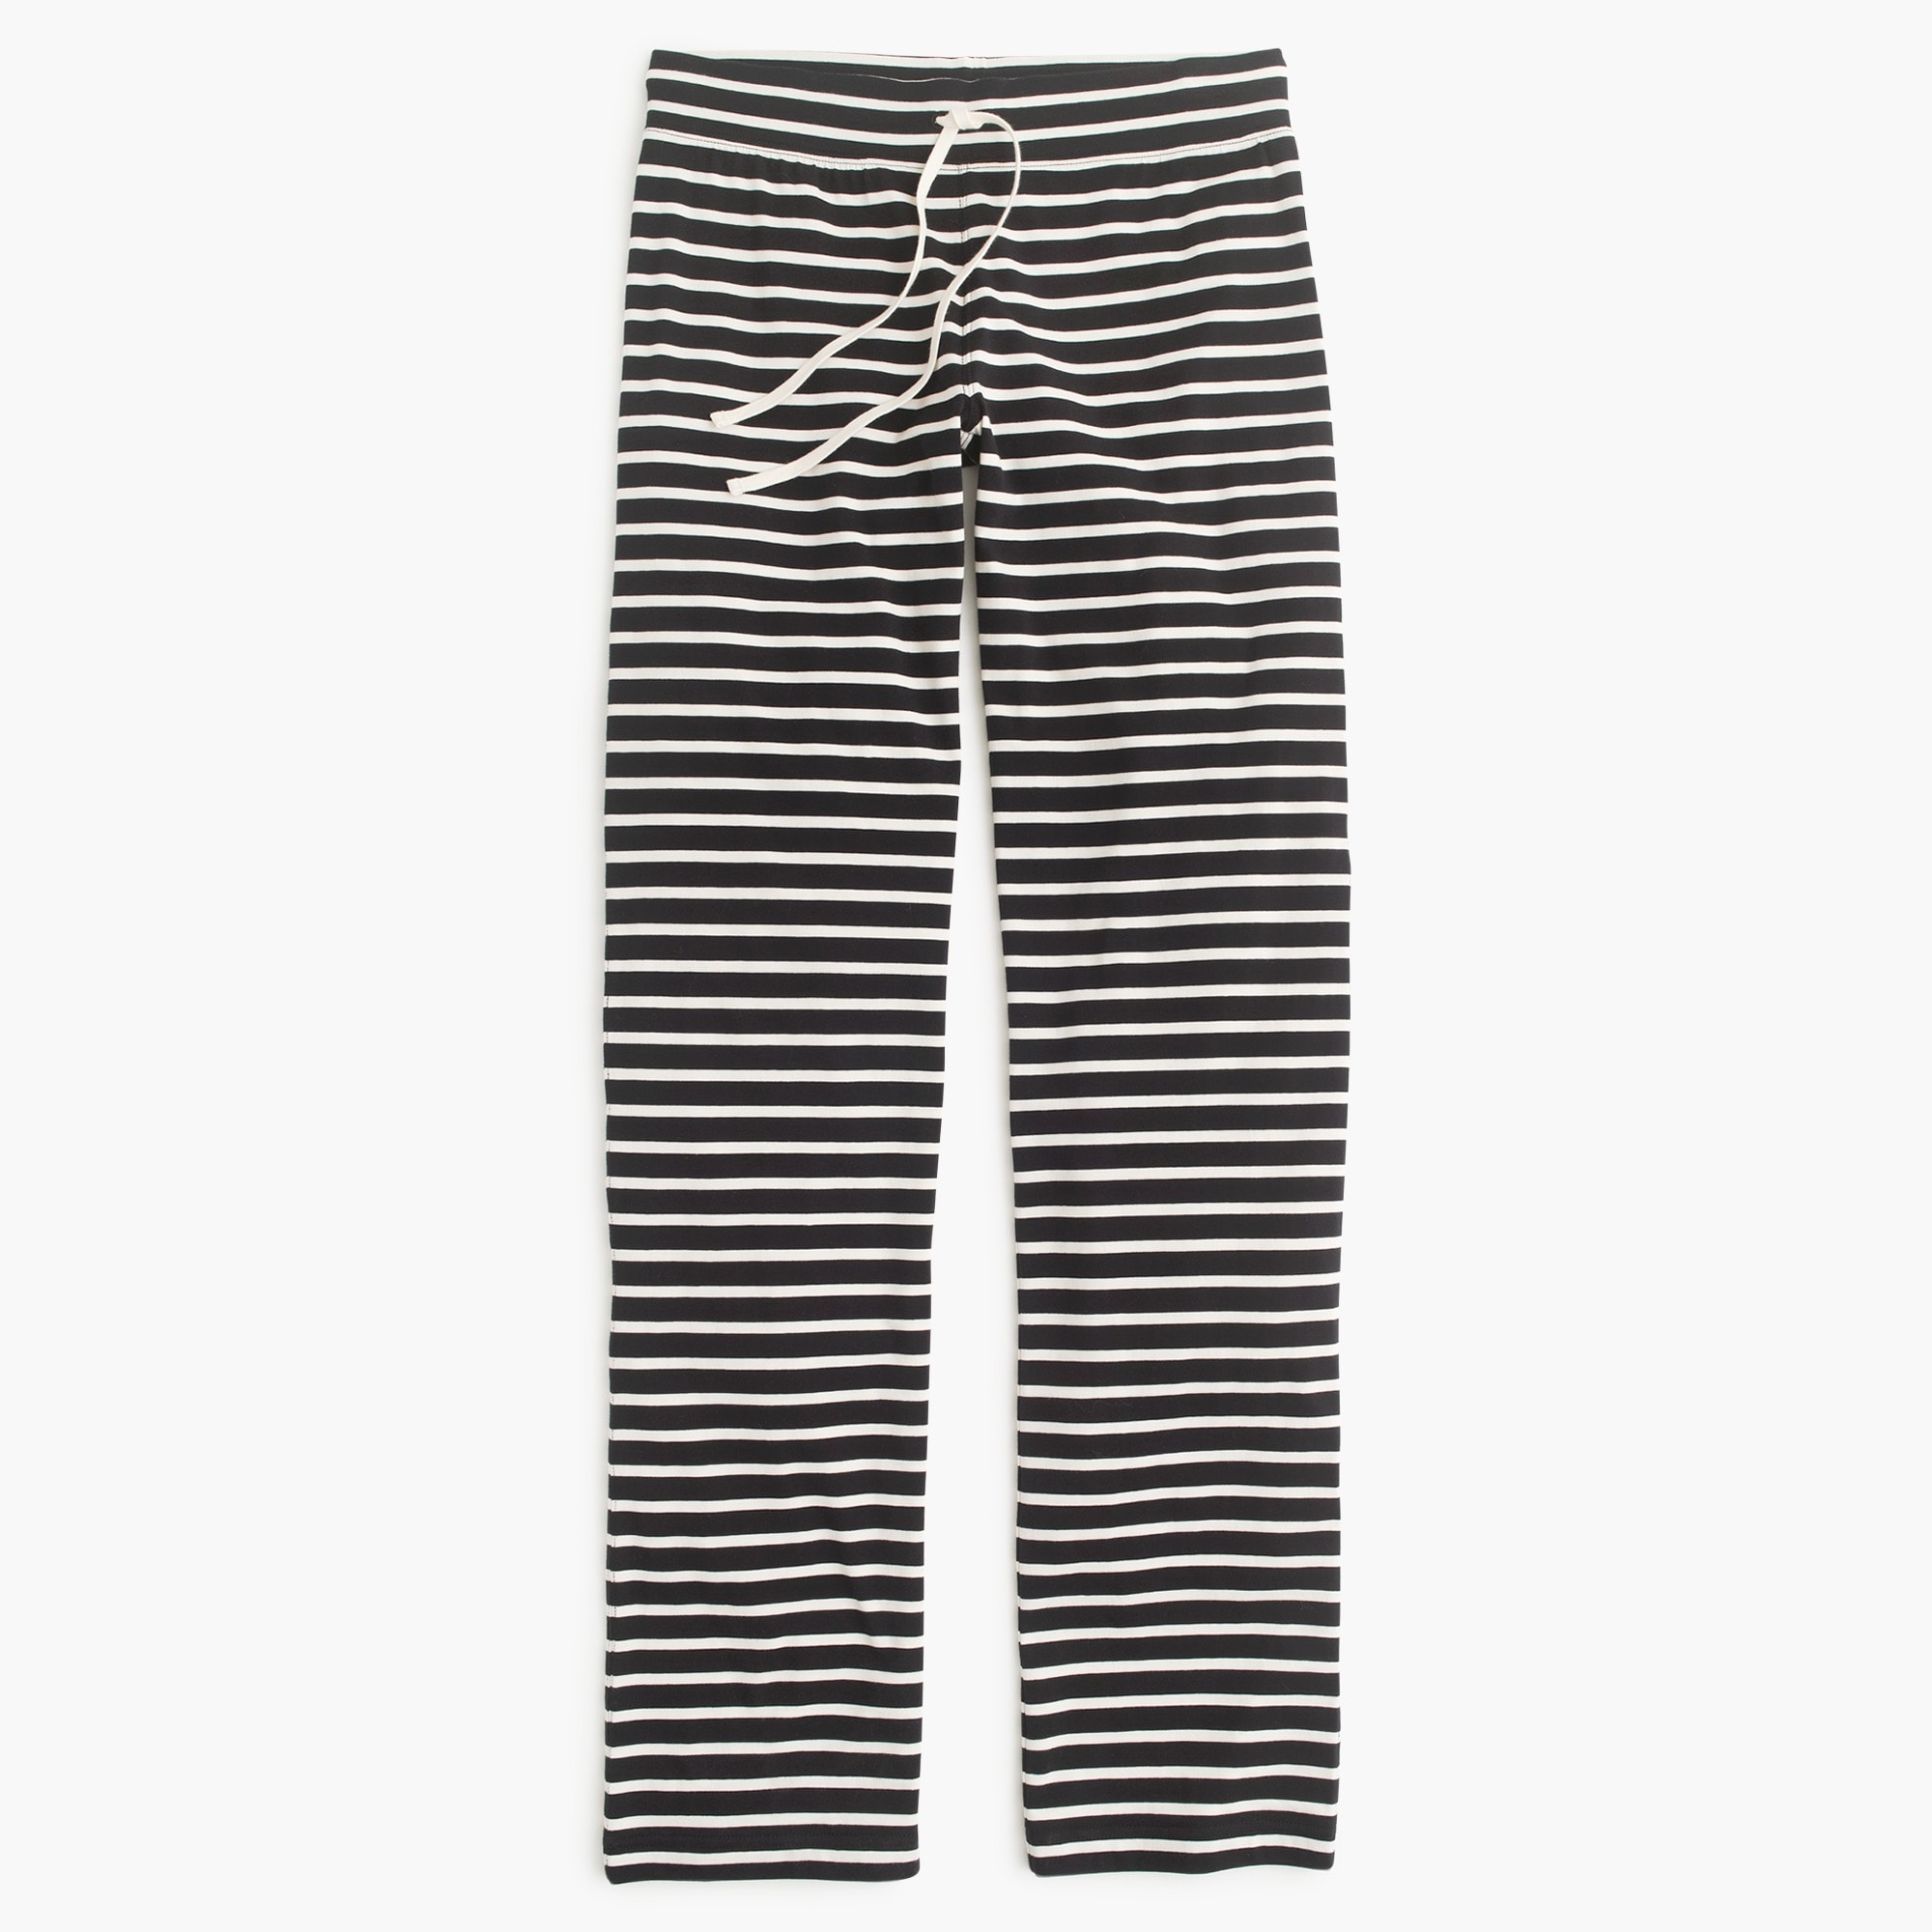 Image 3 for Tall dreamy cotton pant in stripe